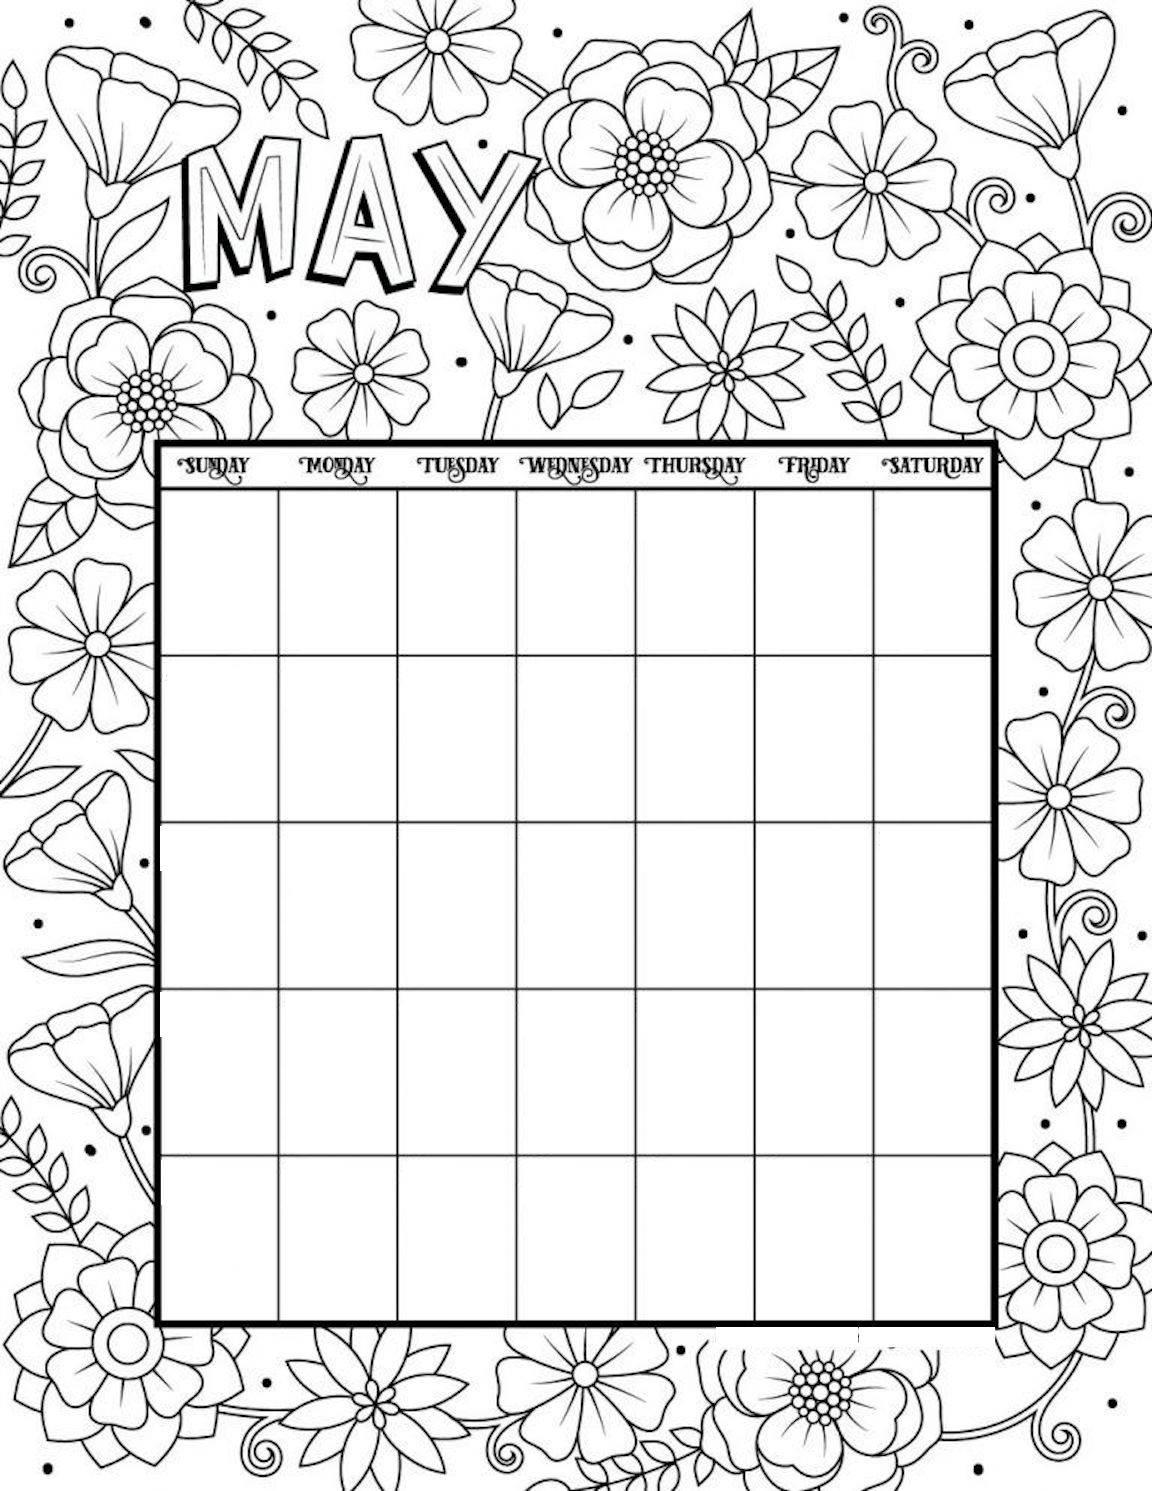 Free Printable Calendar Coloring Pages - Every Month, ANY Year